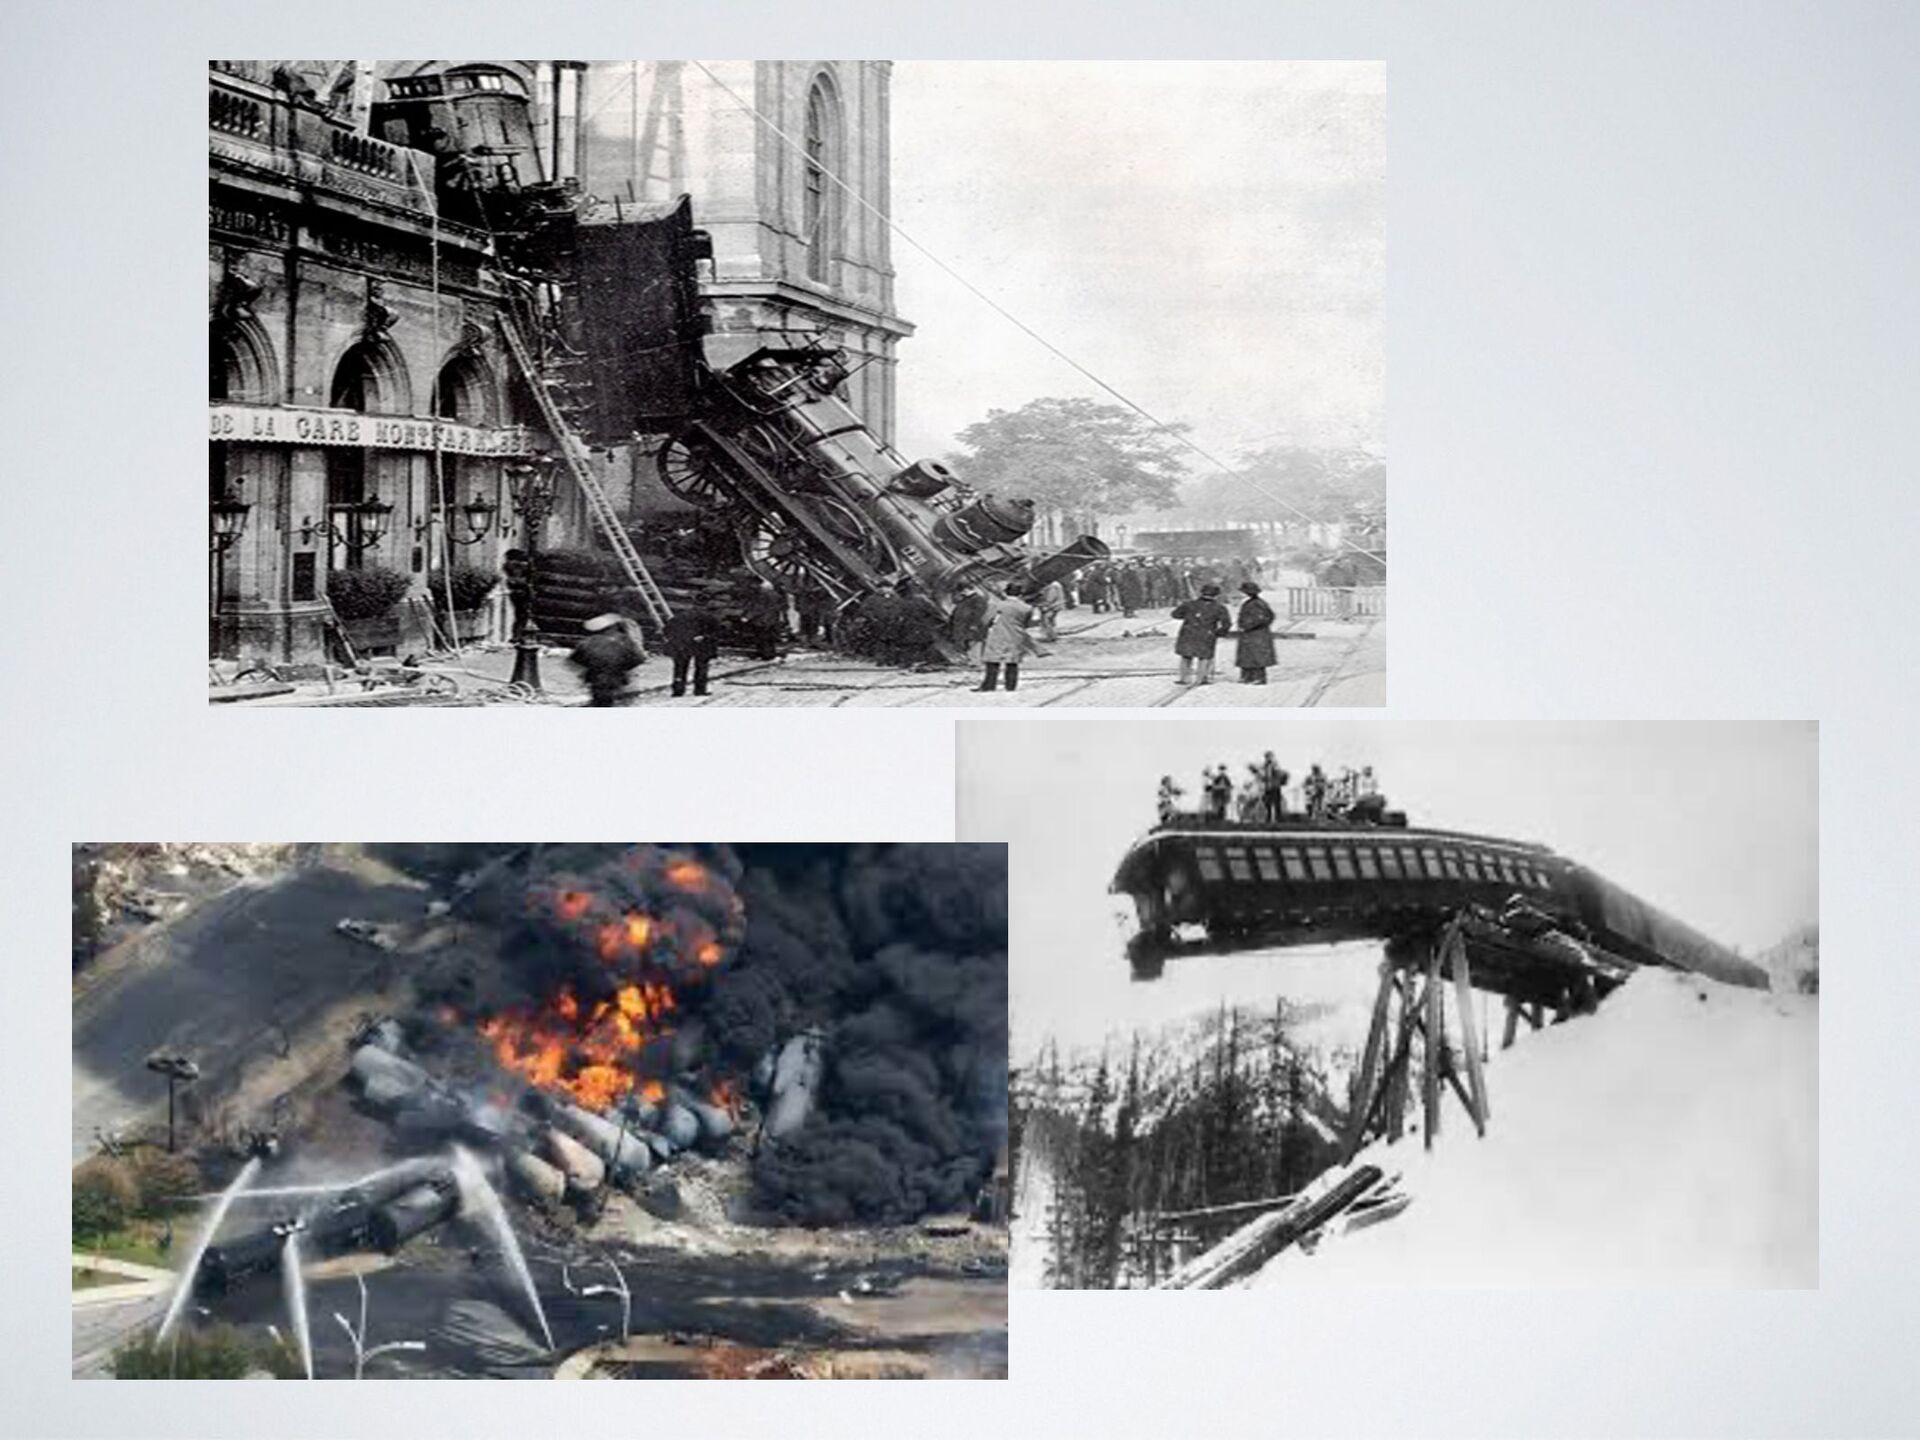 FIX WHILE DELIVERING VALUE